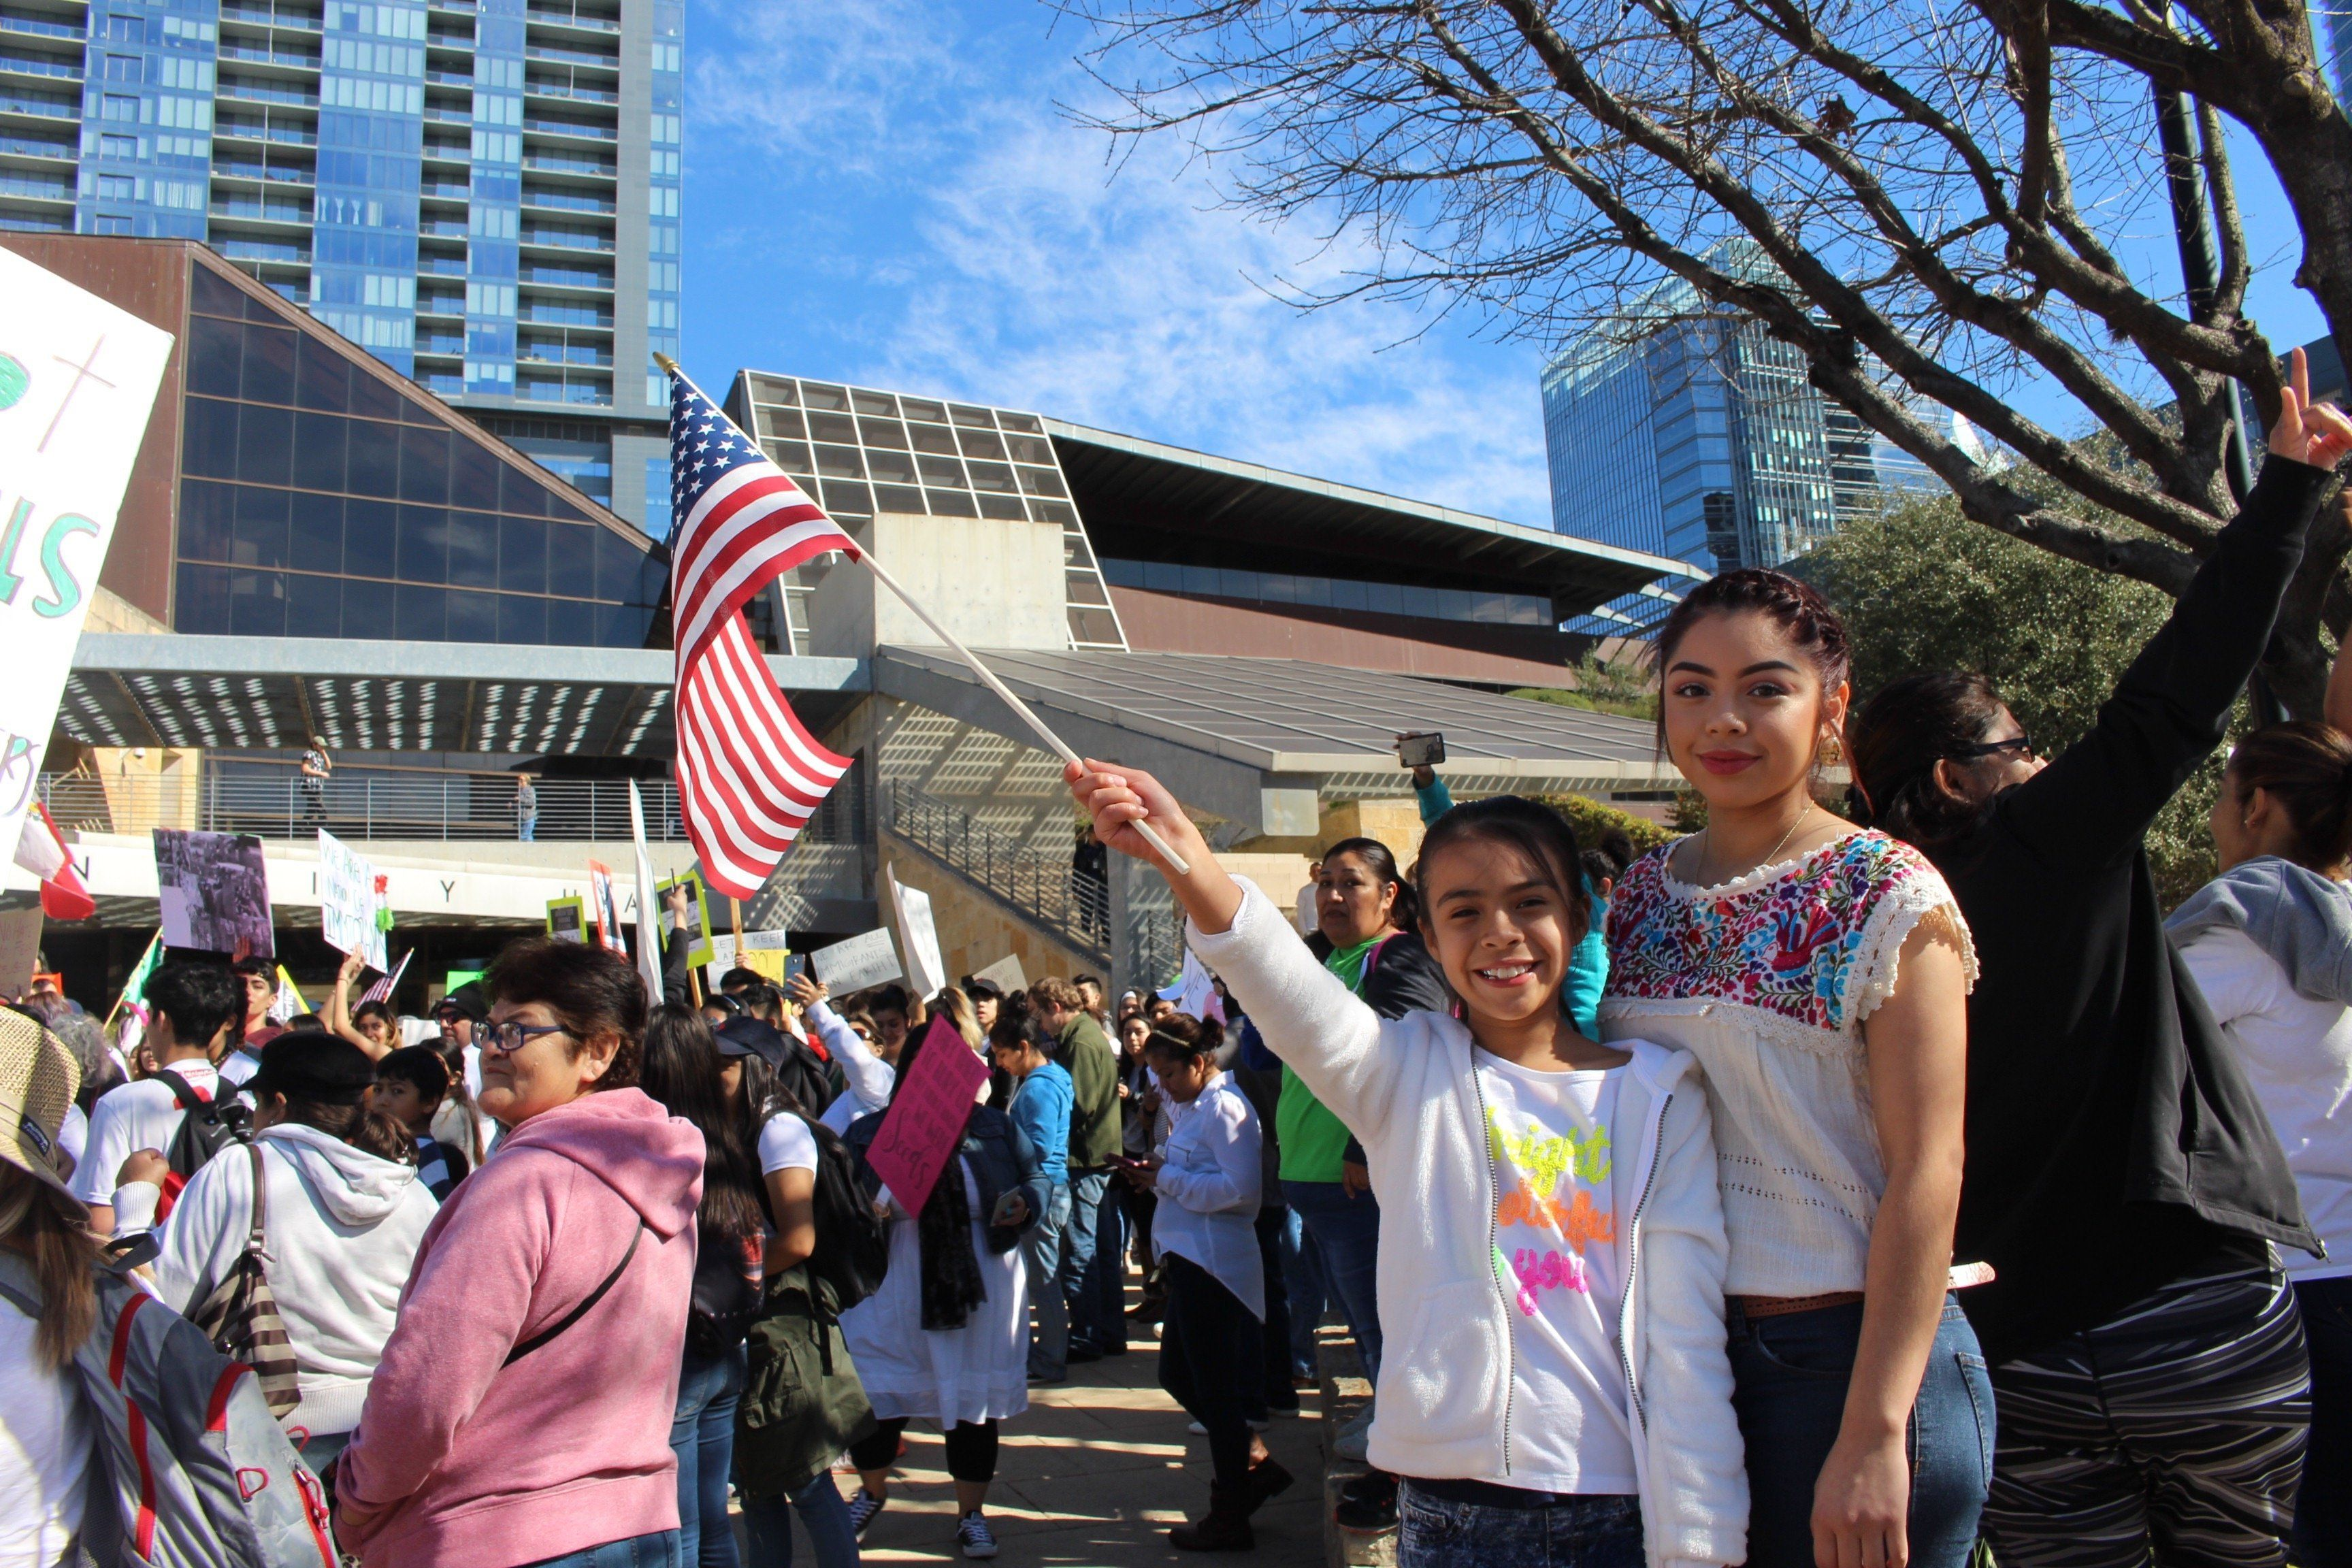 Noemí, 17, waved an American flag with her younger sister in front of Austin City Hall on Feb. 16, 2017, at a demonstr